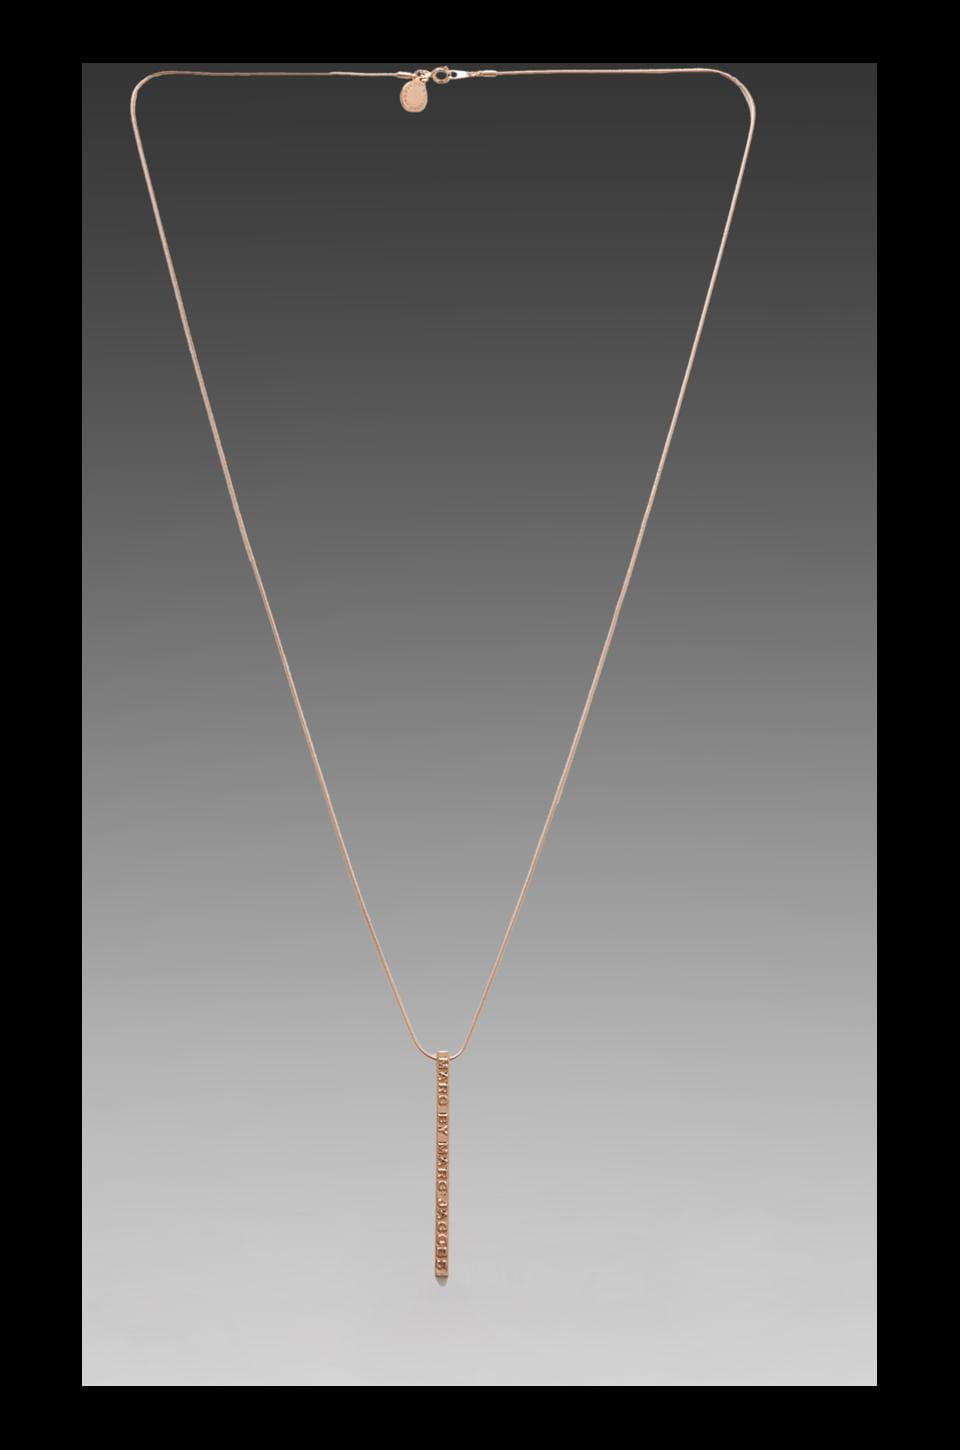 Marc by Marc Jacobs Letterpress Pendant Necklace in Rose Gold